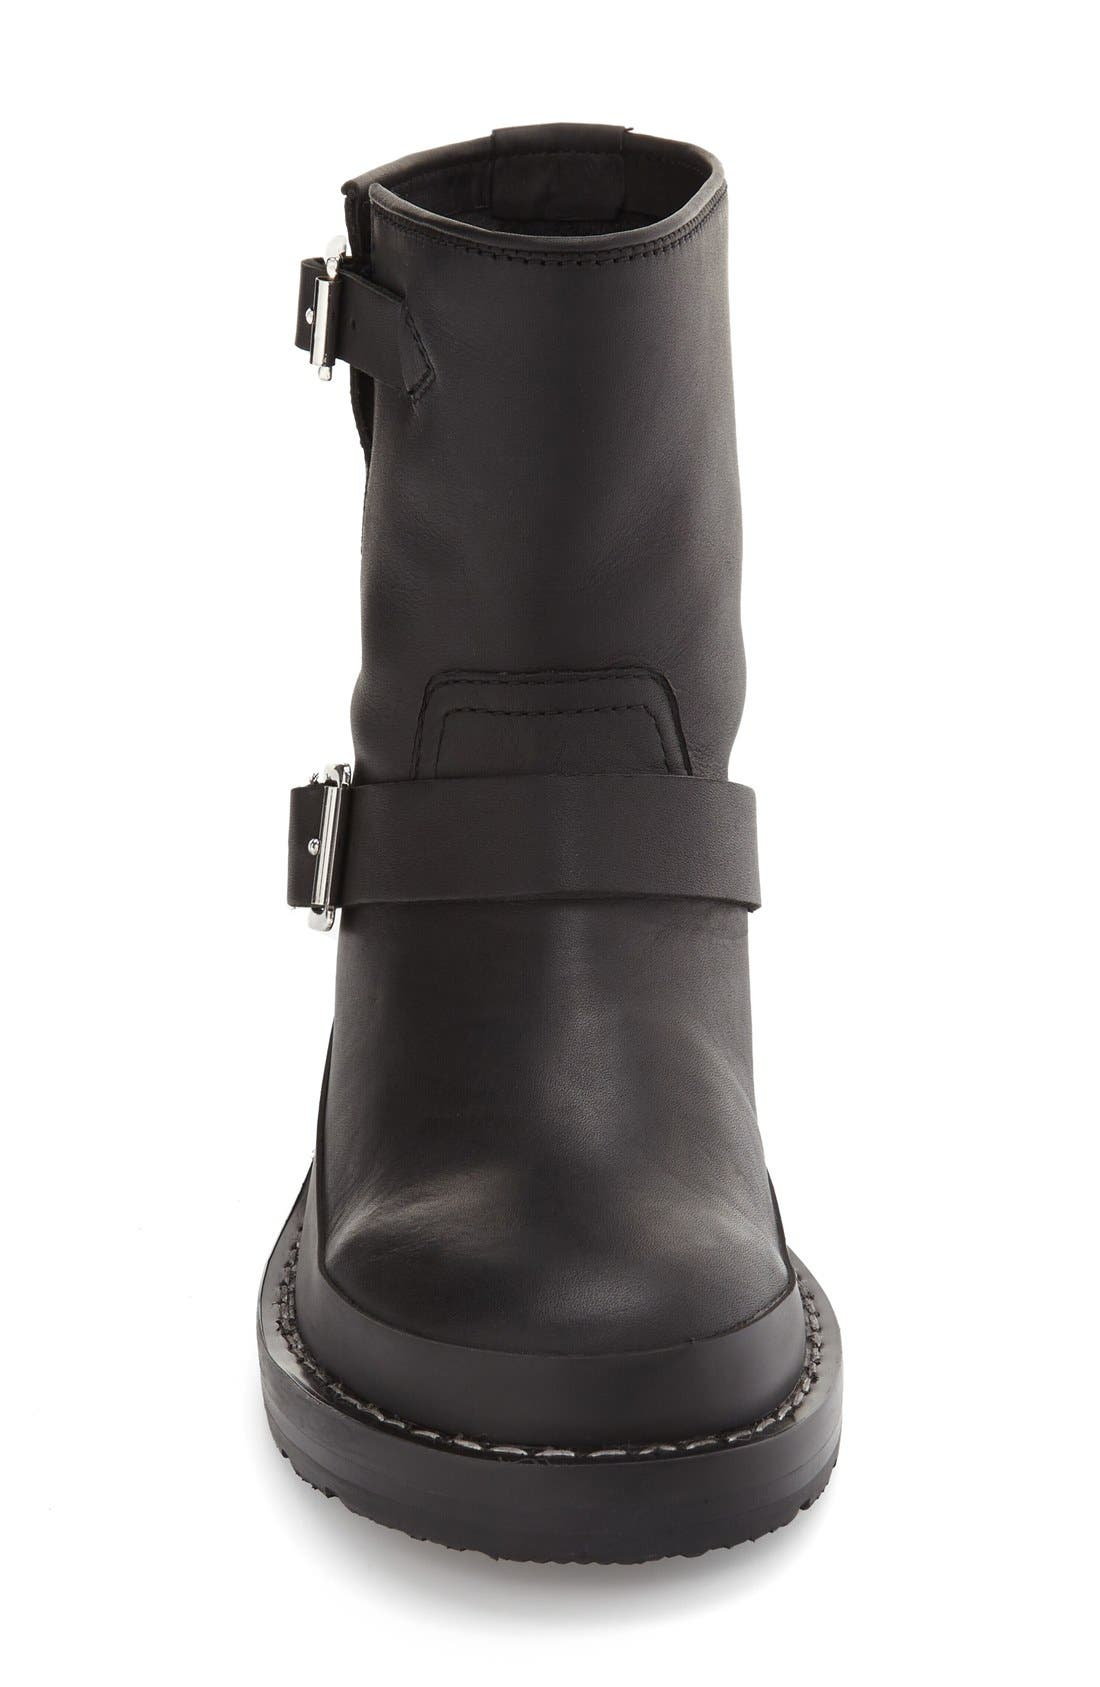 Original Biker Water Resistant Boot,                             Alternate thumbnail 3, color,                             Black Leather